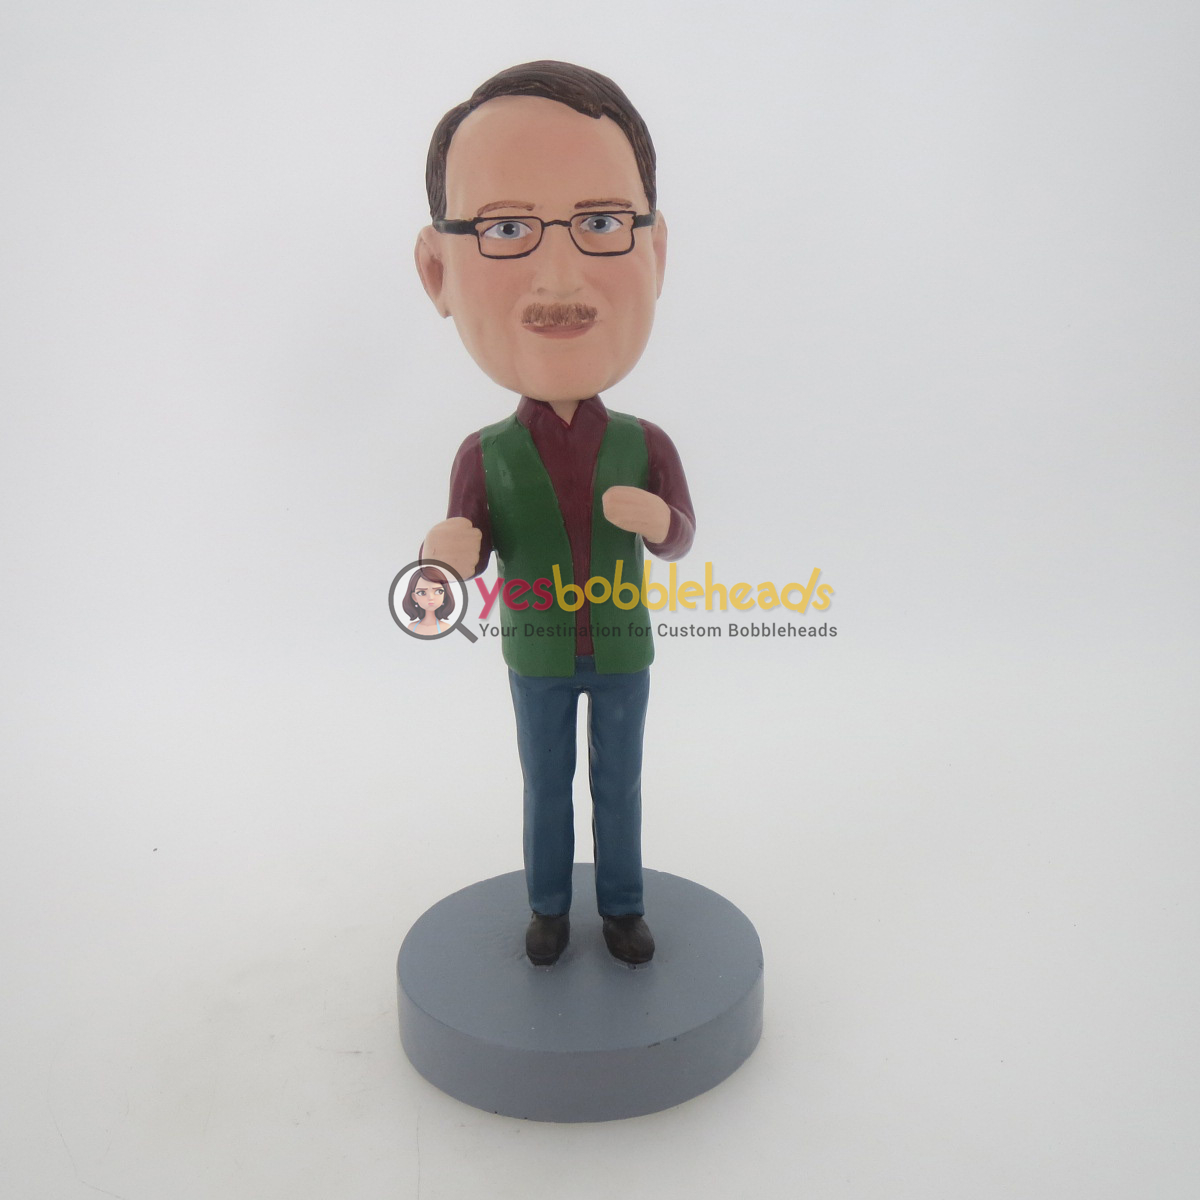 Picture of Custom Bobblehead Doll: Casual Man Wearing Glass